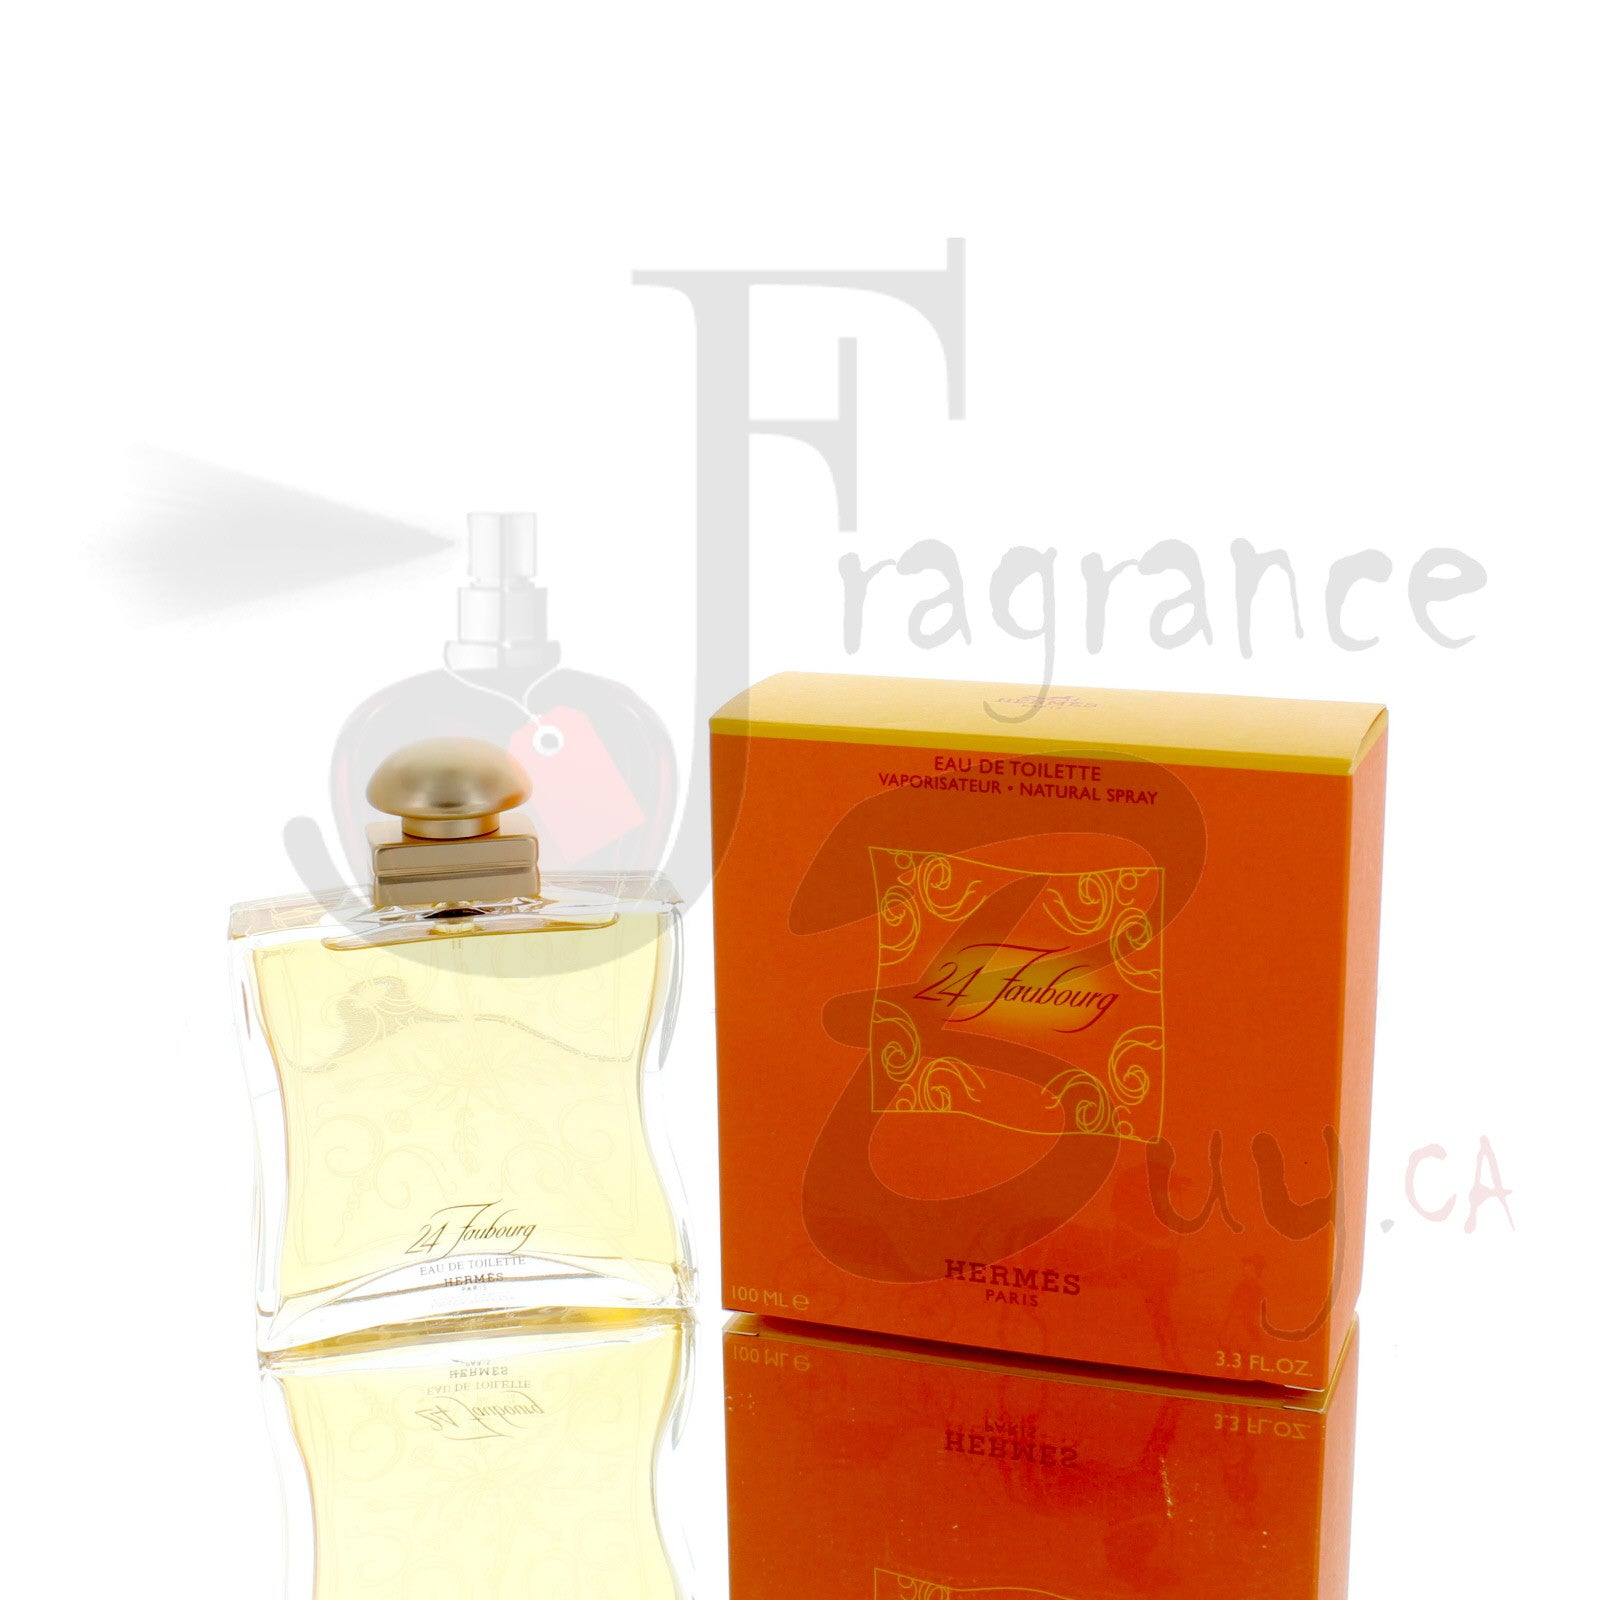 24 Faubourg by Hermes For Woman